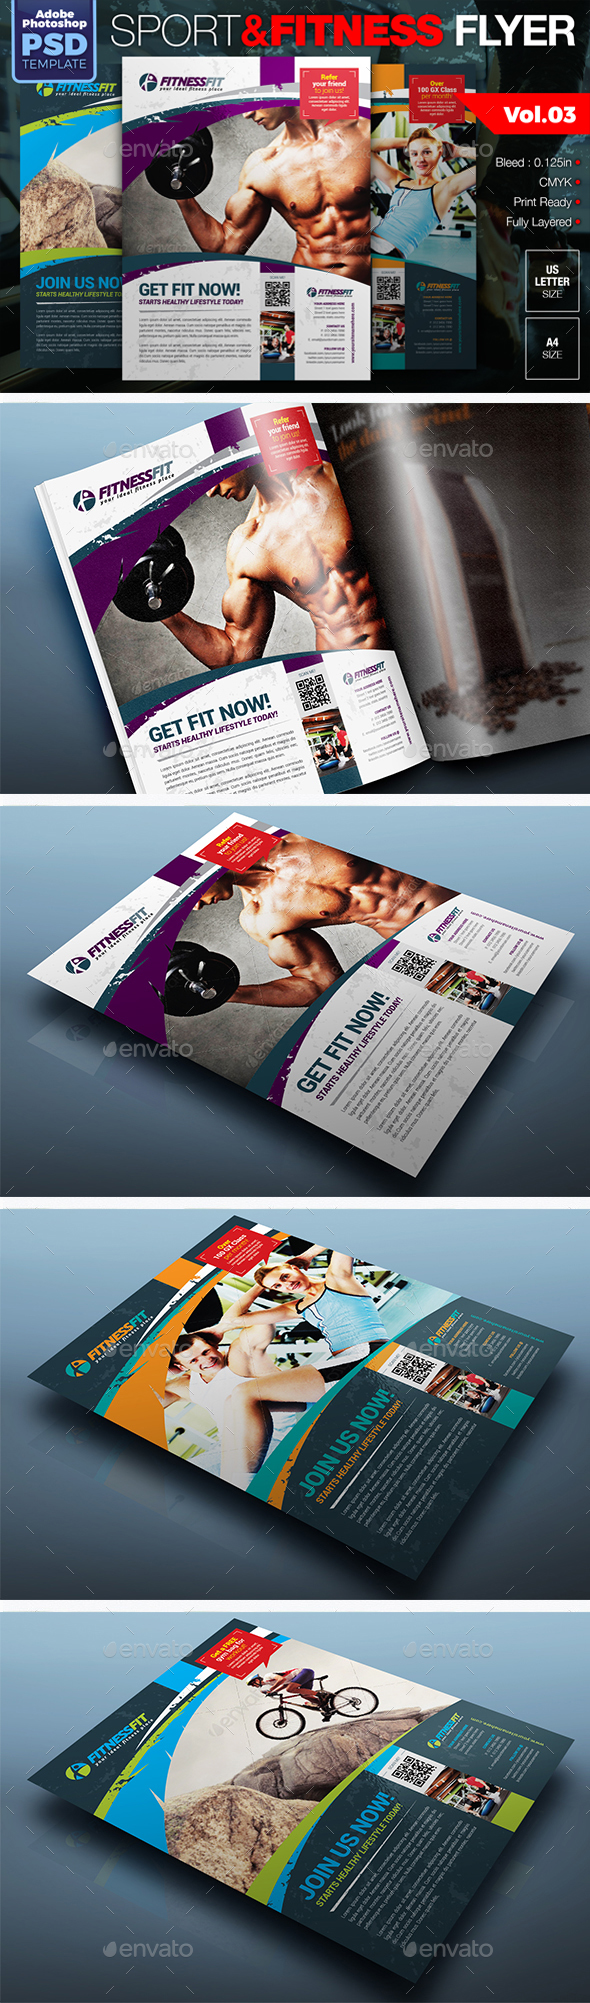 Sport & Fitness Flyer Vol.03 - Sports Events